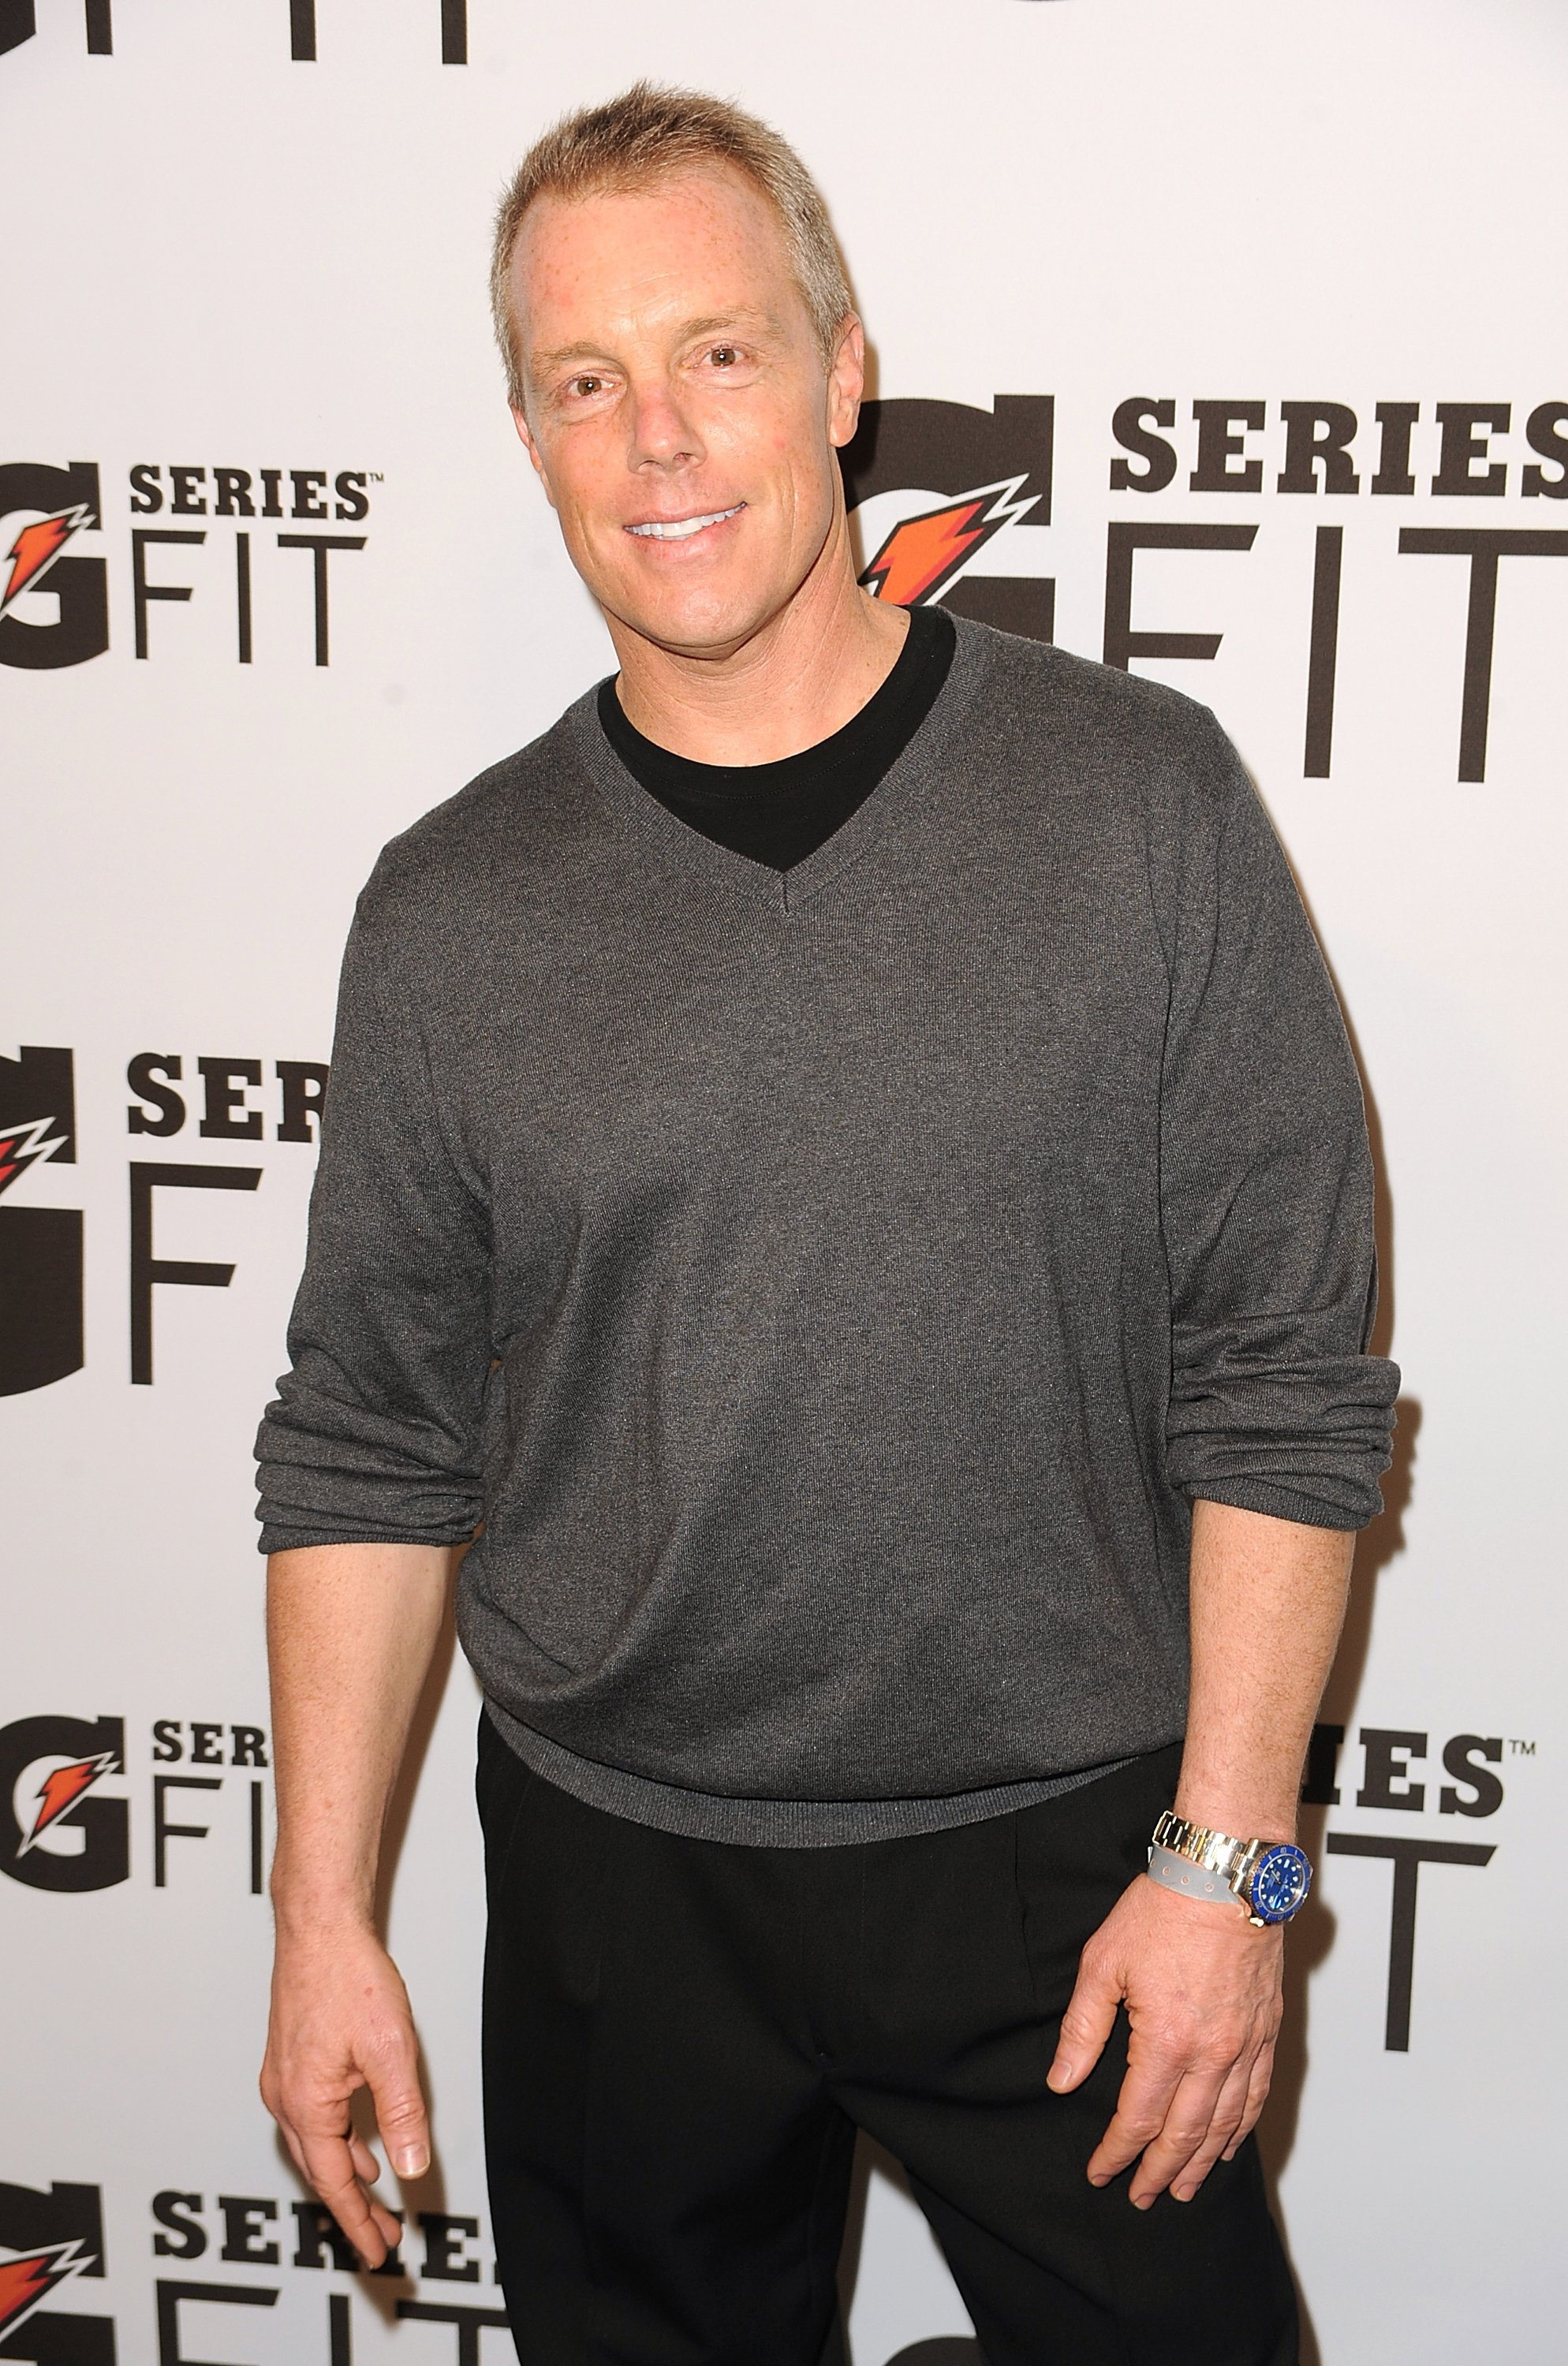 Gunnar Peterson arrives at Gatorade's 'G Series Fit' Launch Party at the SLS Hotel on April 12, 2011 in Los Angeles